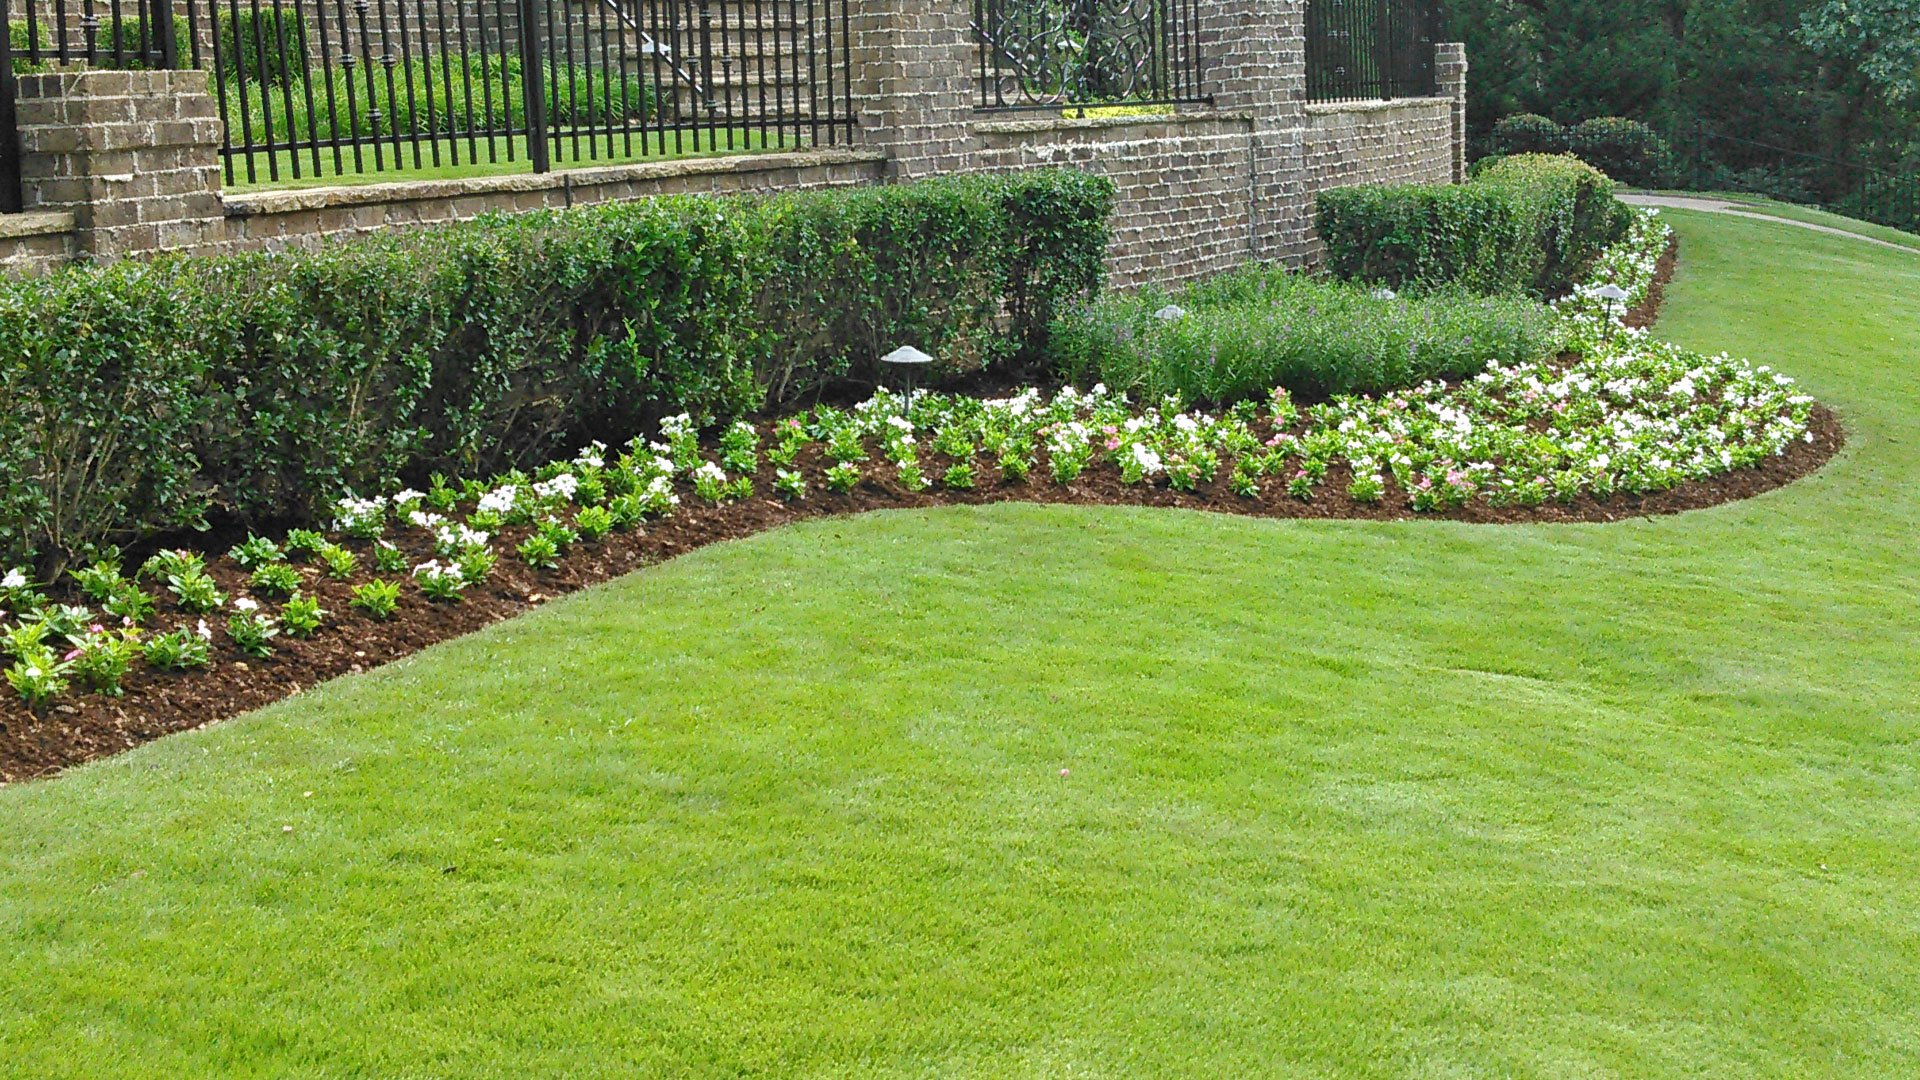 Our team planted spring annuals at this home located in Buckhead, GA.